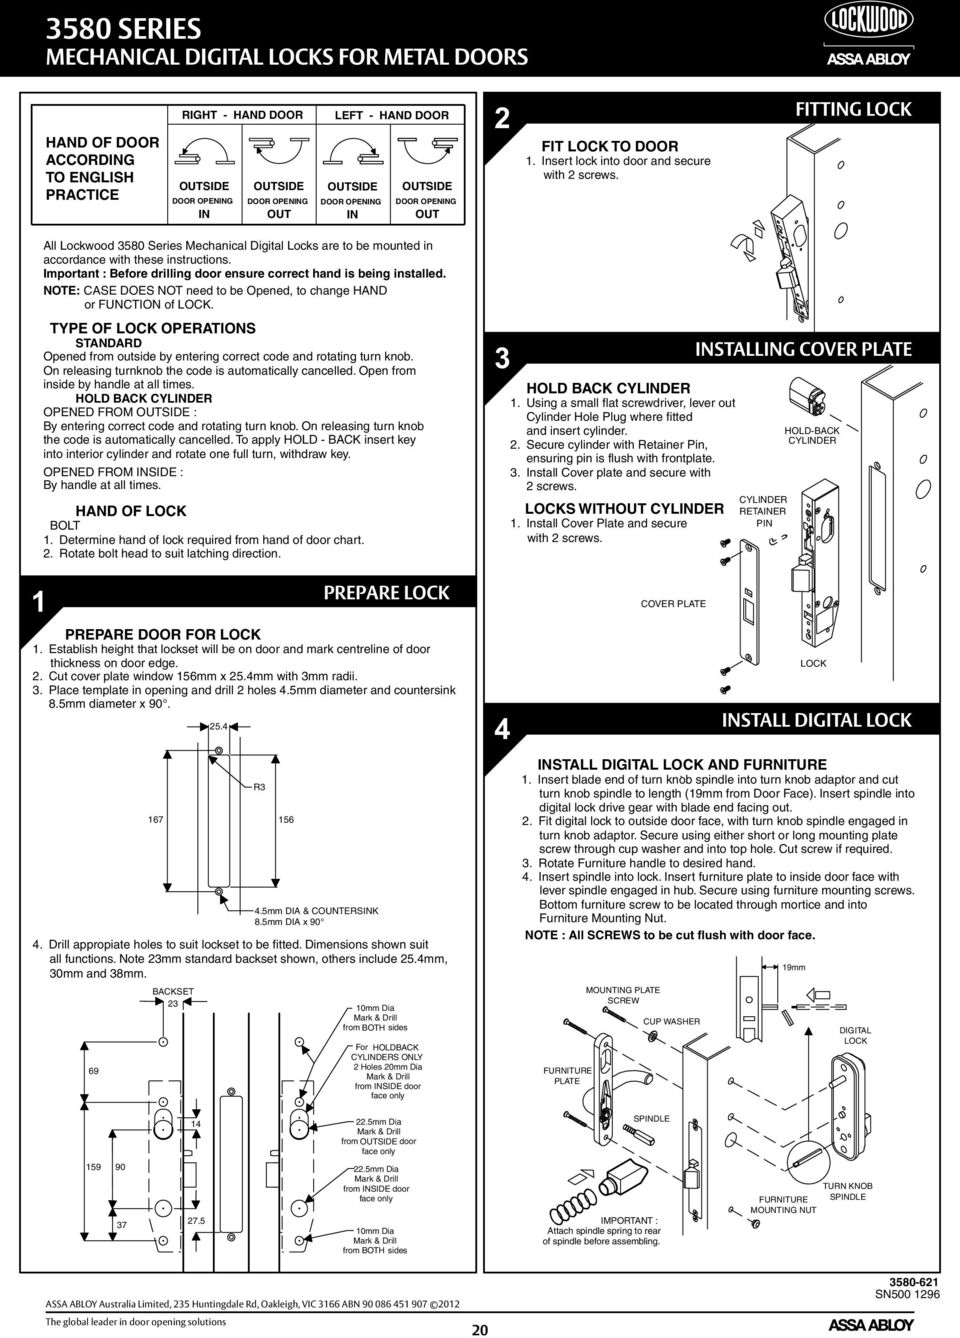 Dx Mechanical Digital Door Locks Service Manual Assa Abloy The Diagram How To Replace A Defective Sliding Latch Ford Fitting Lock All Lockwood 3580 Series Are Be Mounted In Accordance With